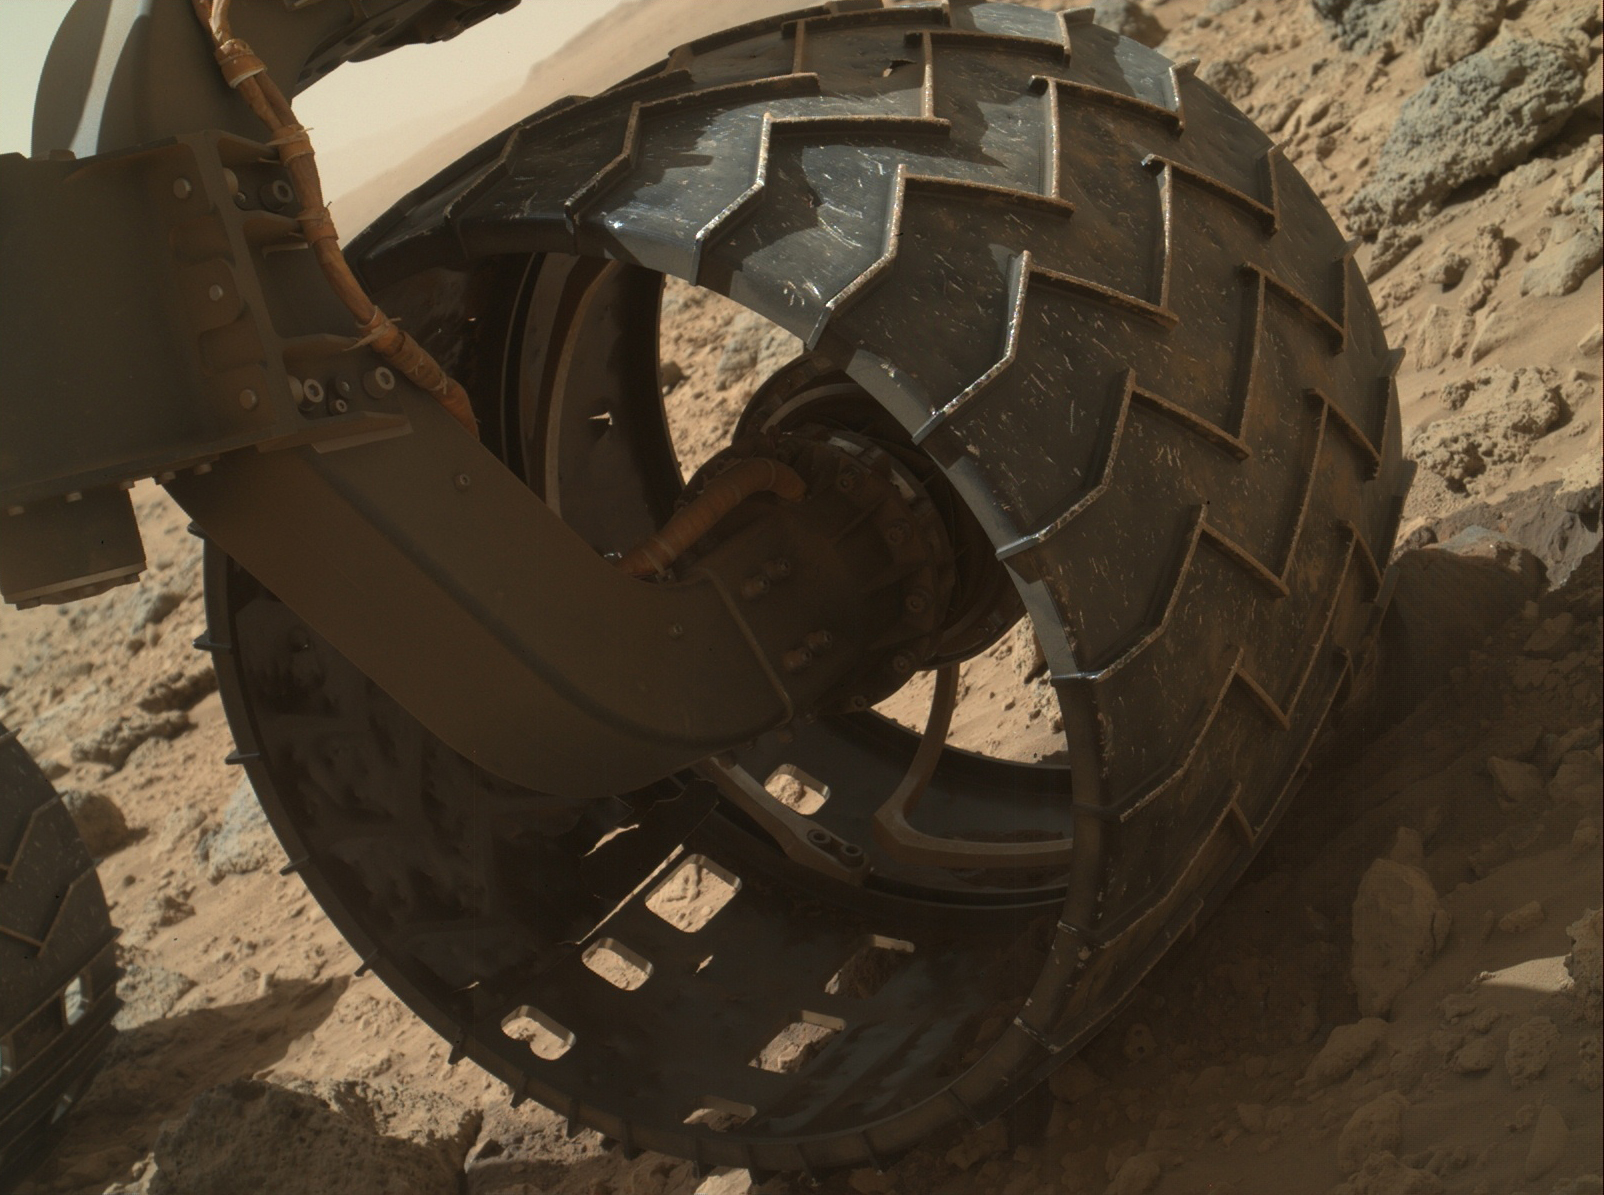 real pics of mars from rover - photo #30